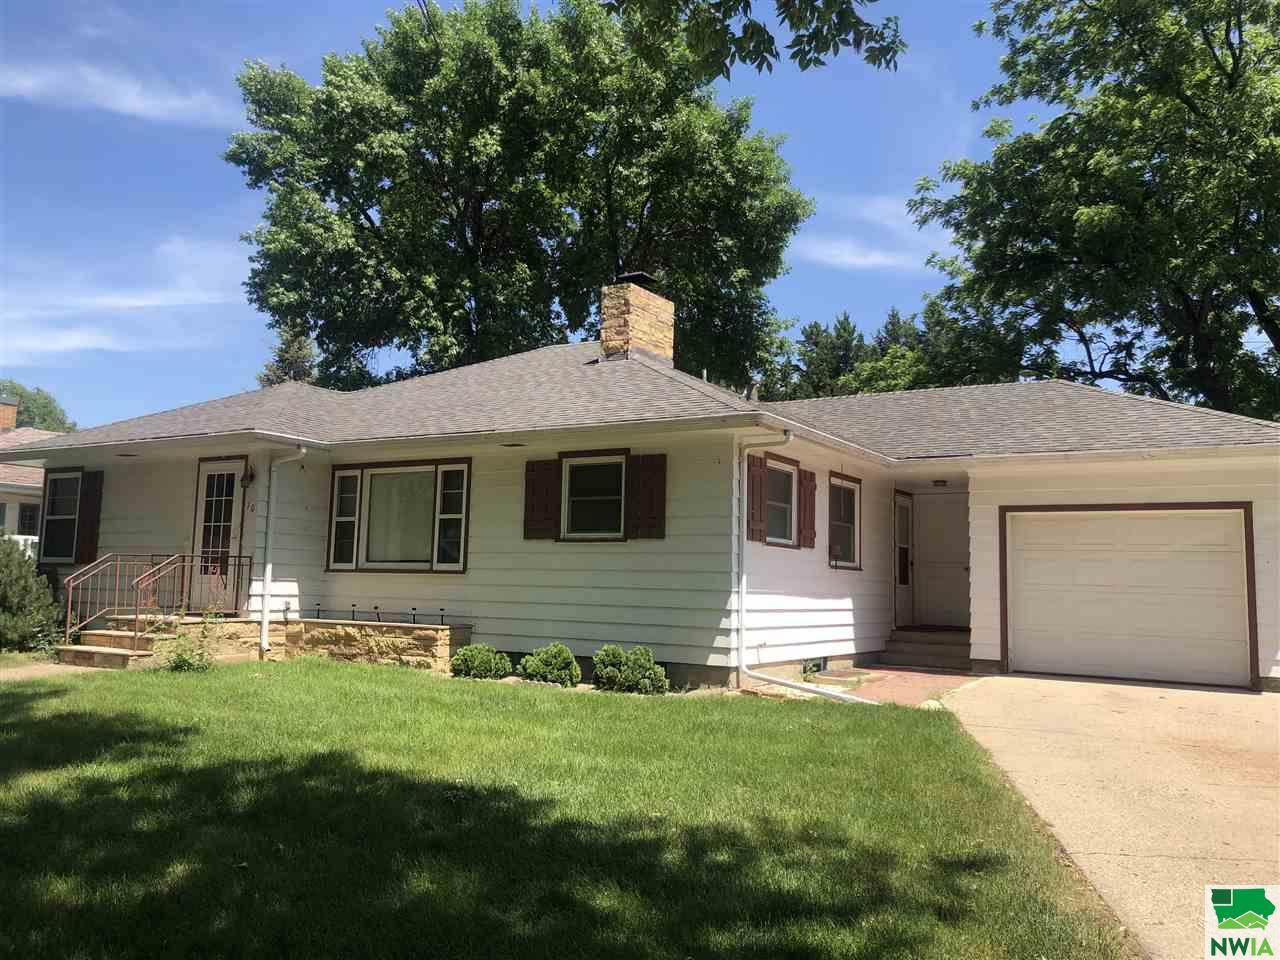 Property for sale at 10 S Pine, Vermillion,  SD 57069